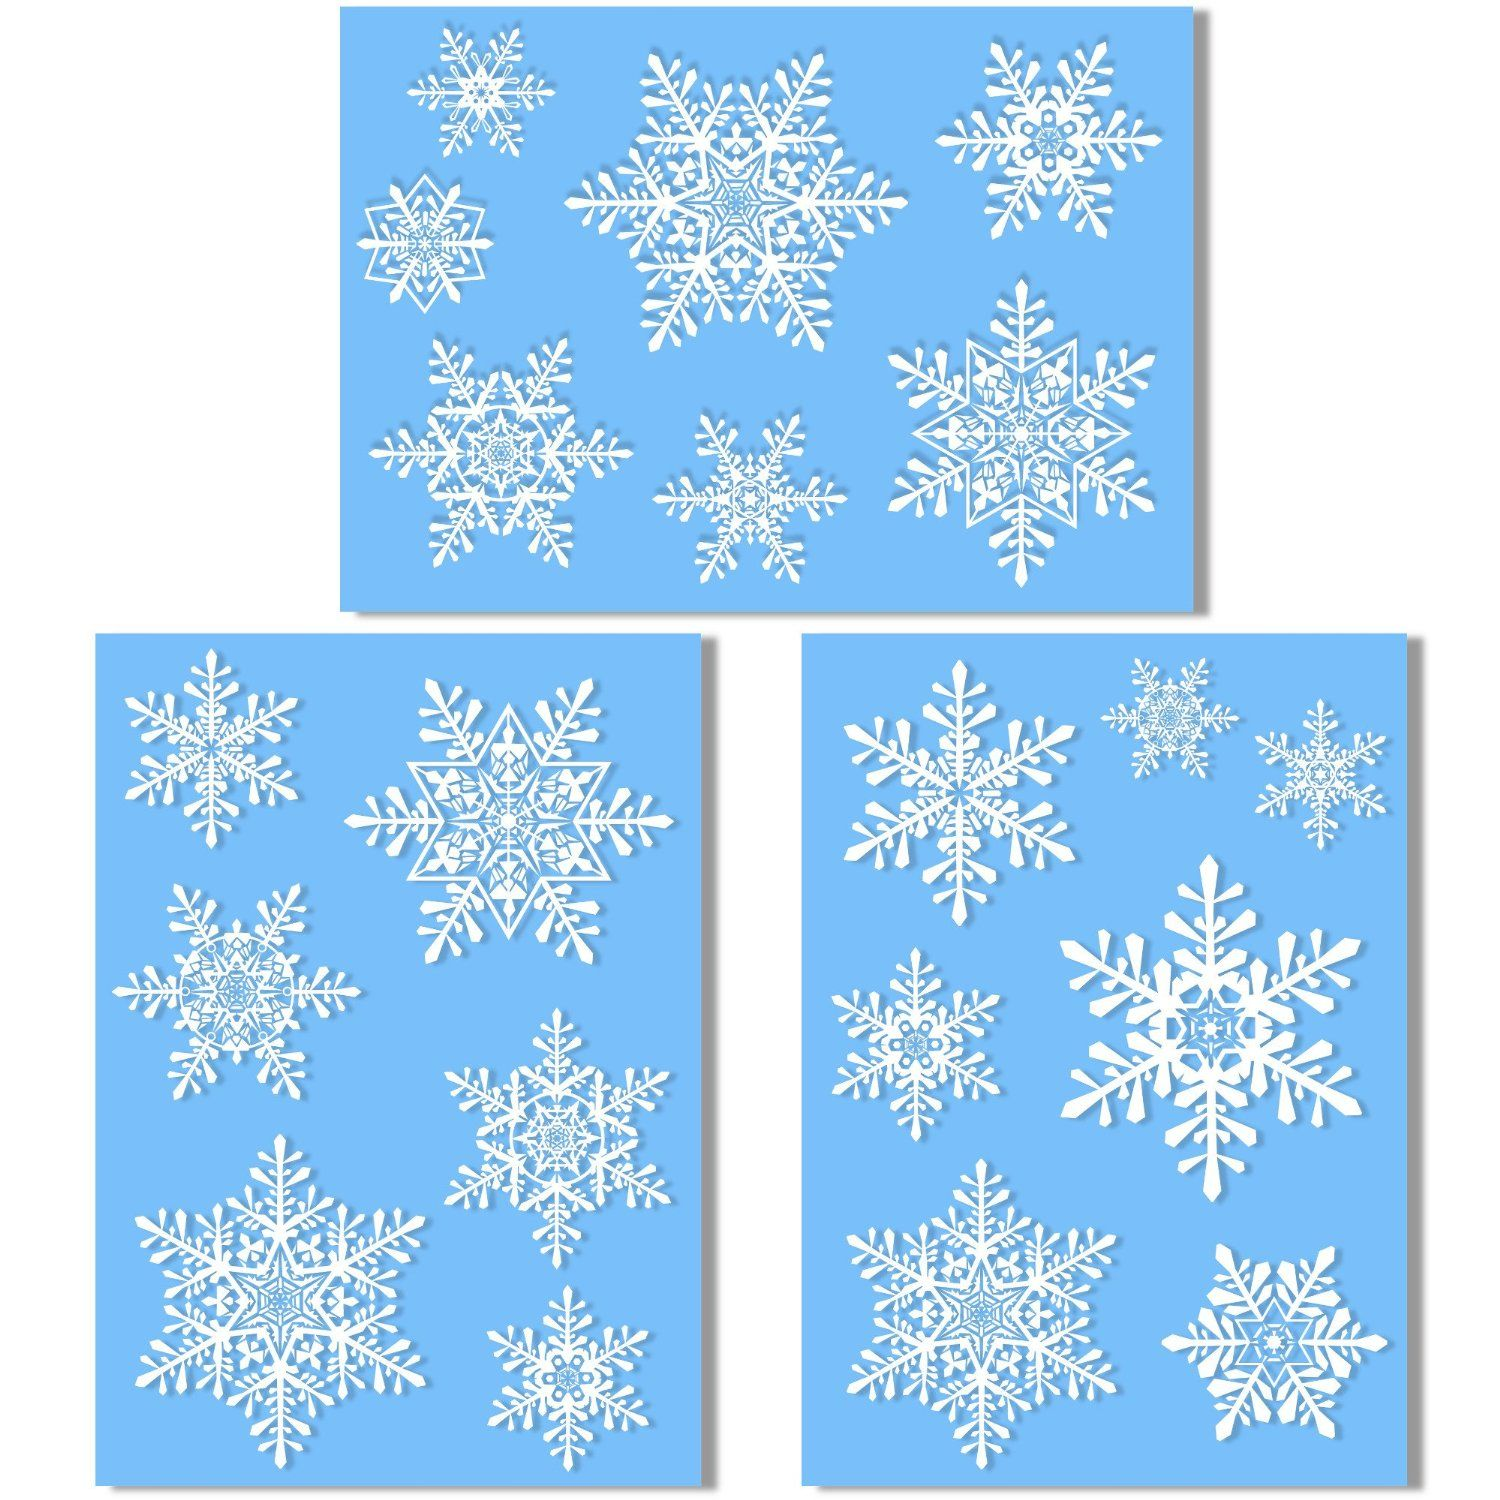 Large Snowflake Window Clings Quick And Simple Christmas - Window stickers amazon uk